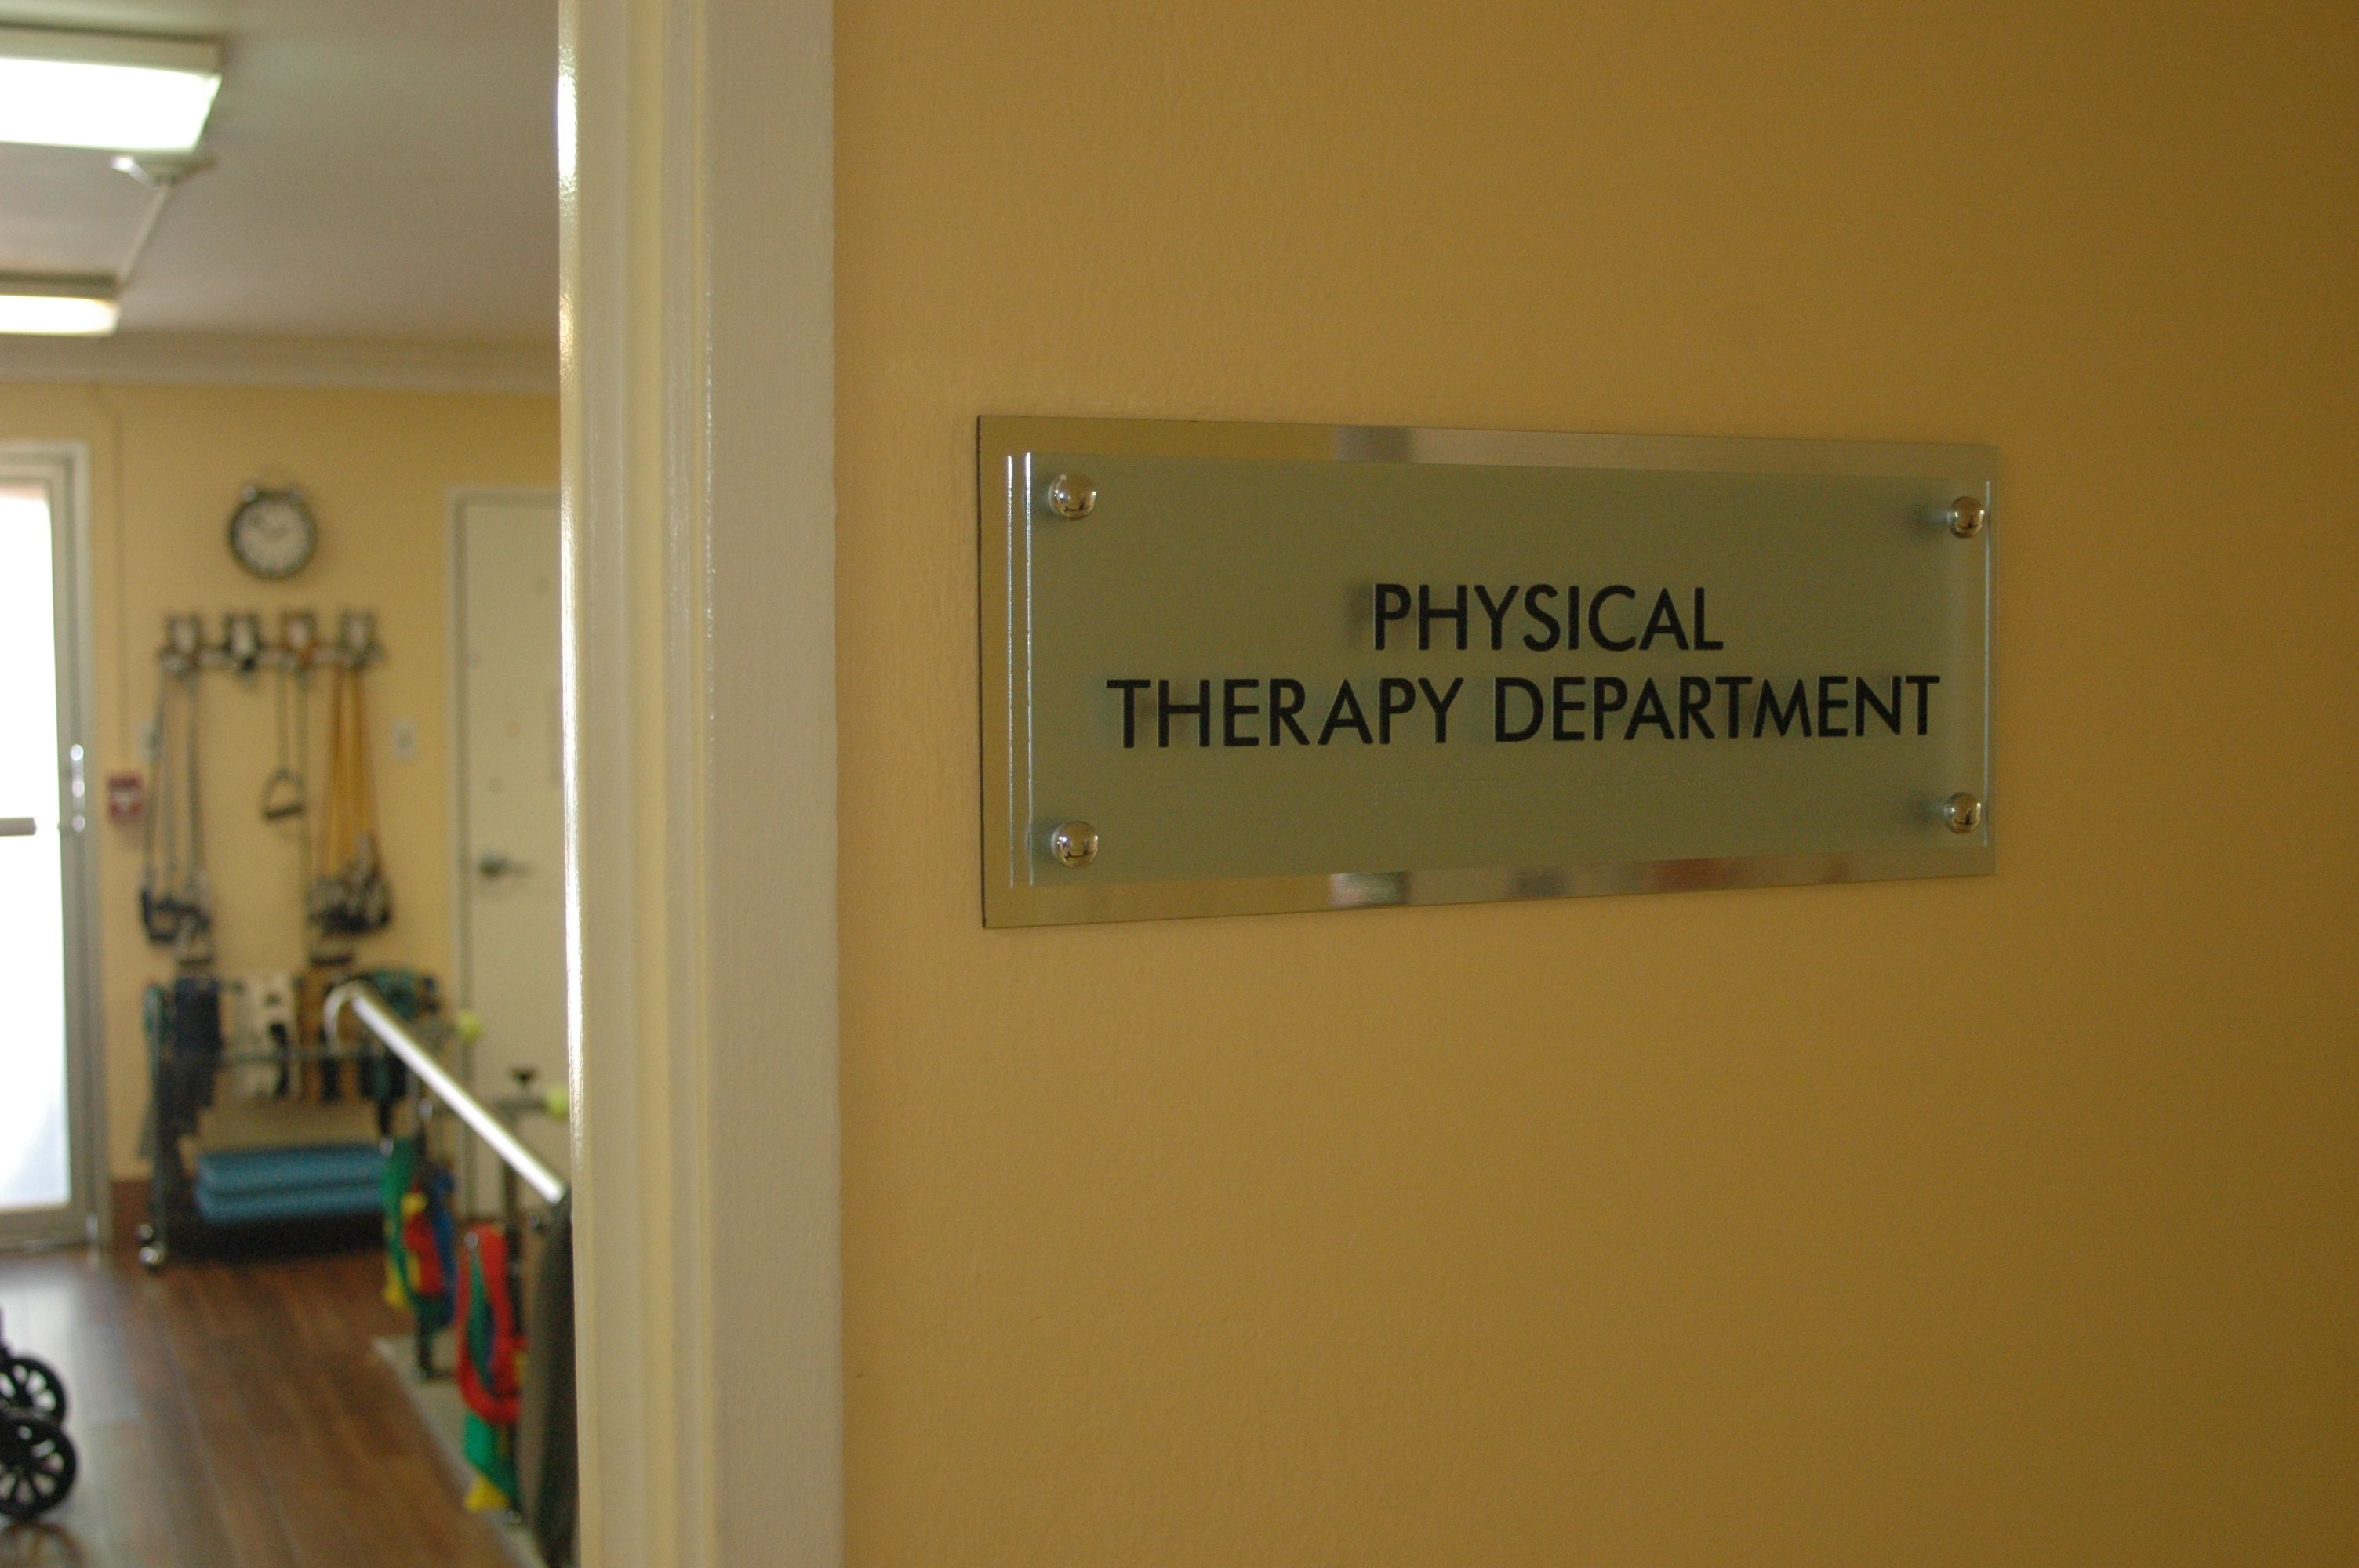 Physical therapy department home decor decals home